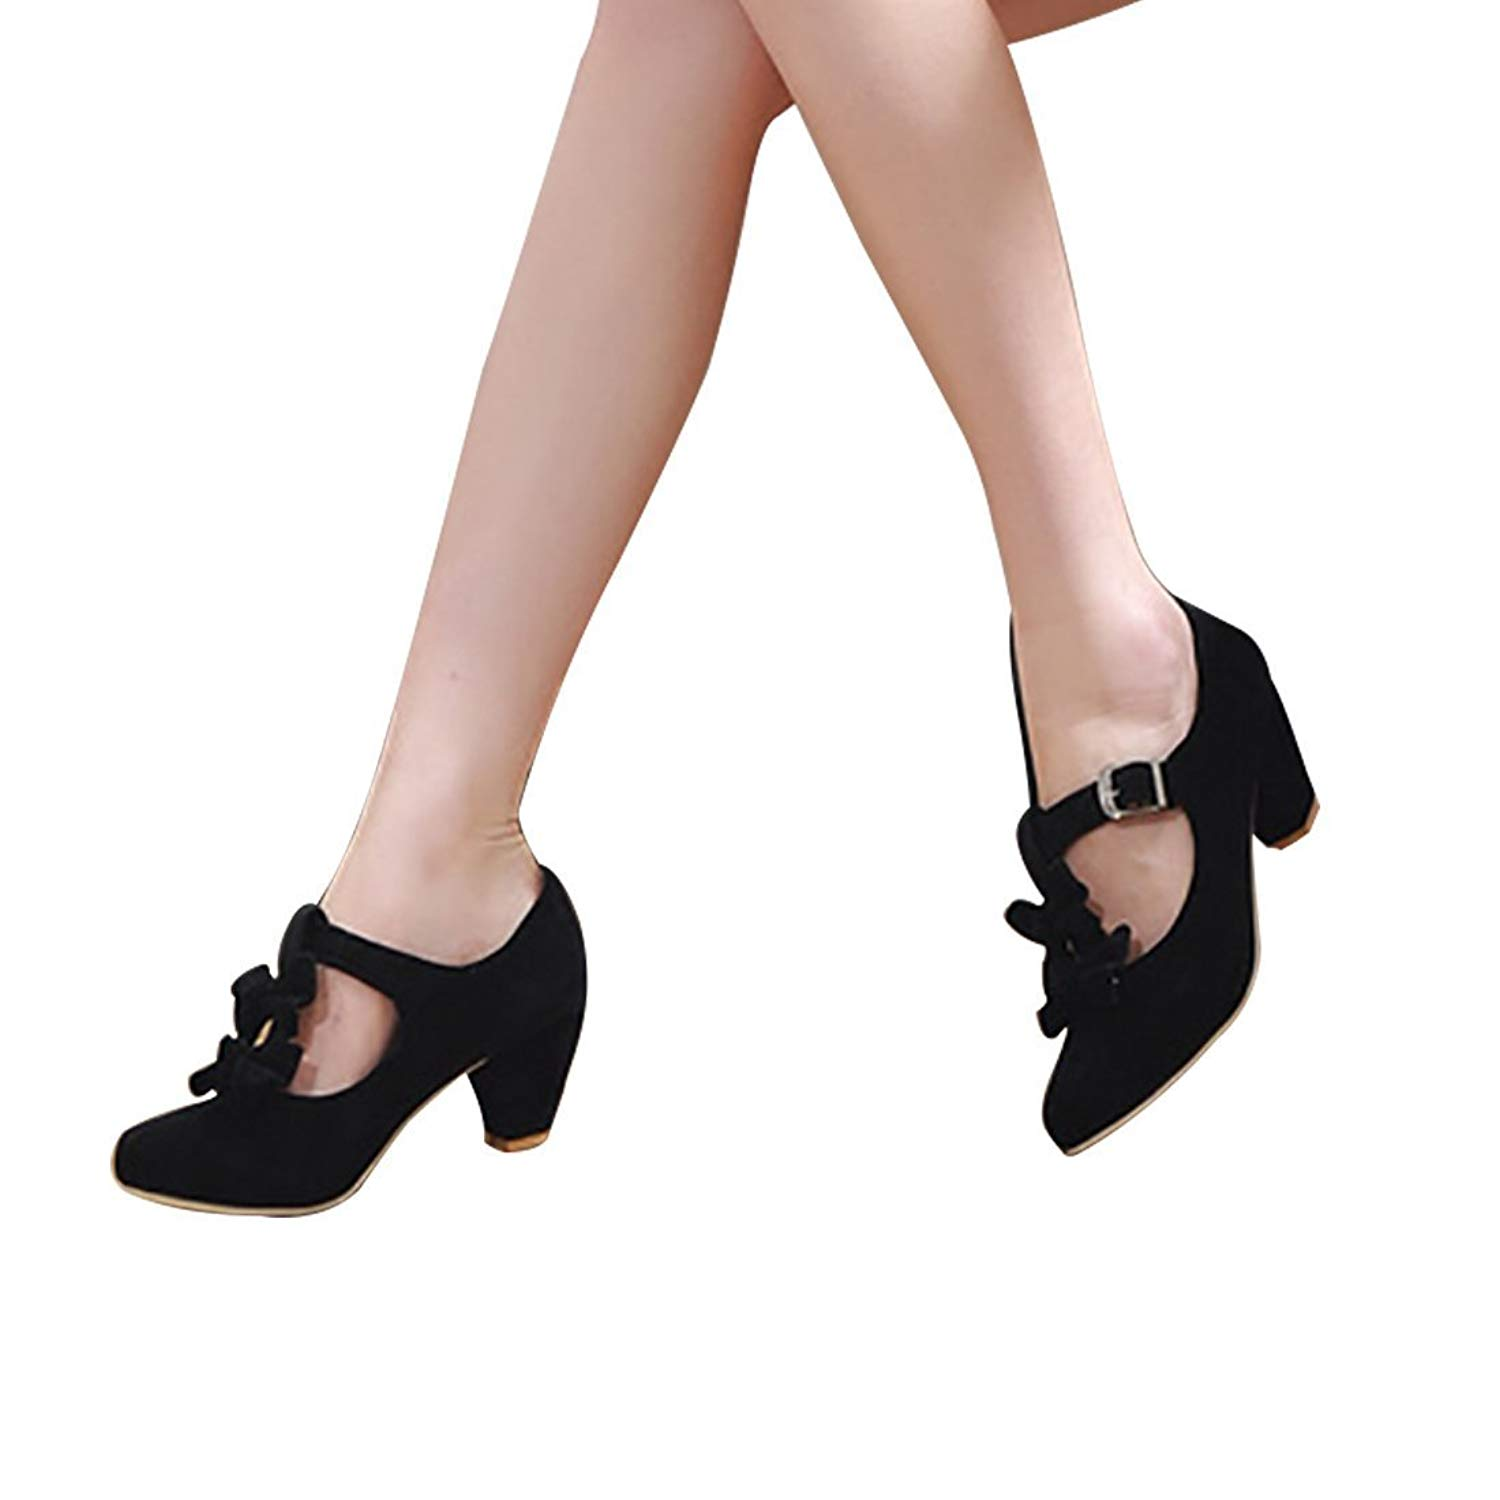 445589f82cd Get Quotations · Mostrin Women s Vintage Lolita Shoes T Strap Buckle Bow  Mary Jane Low Heel Pumps Shoes